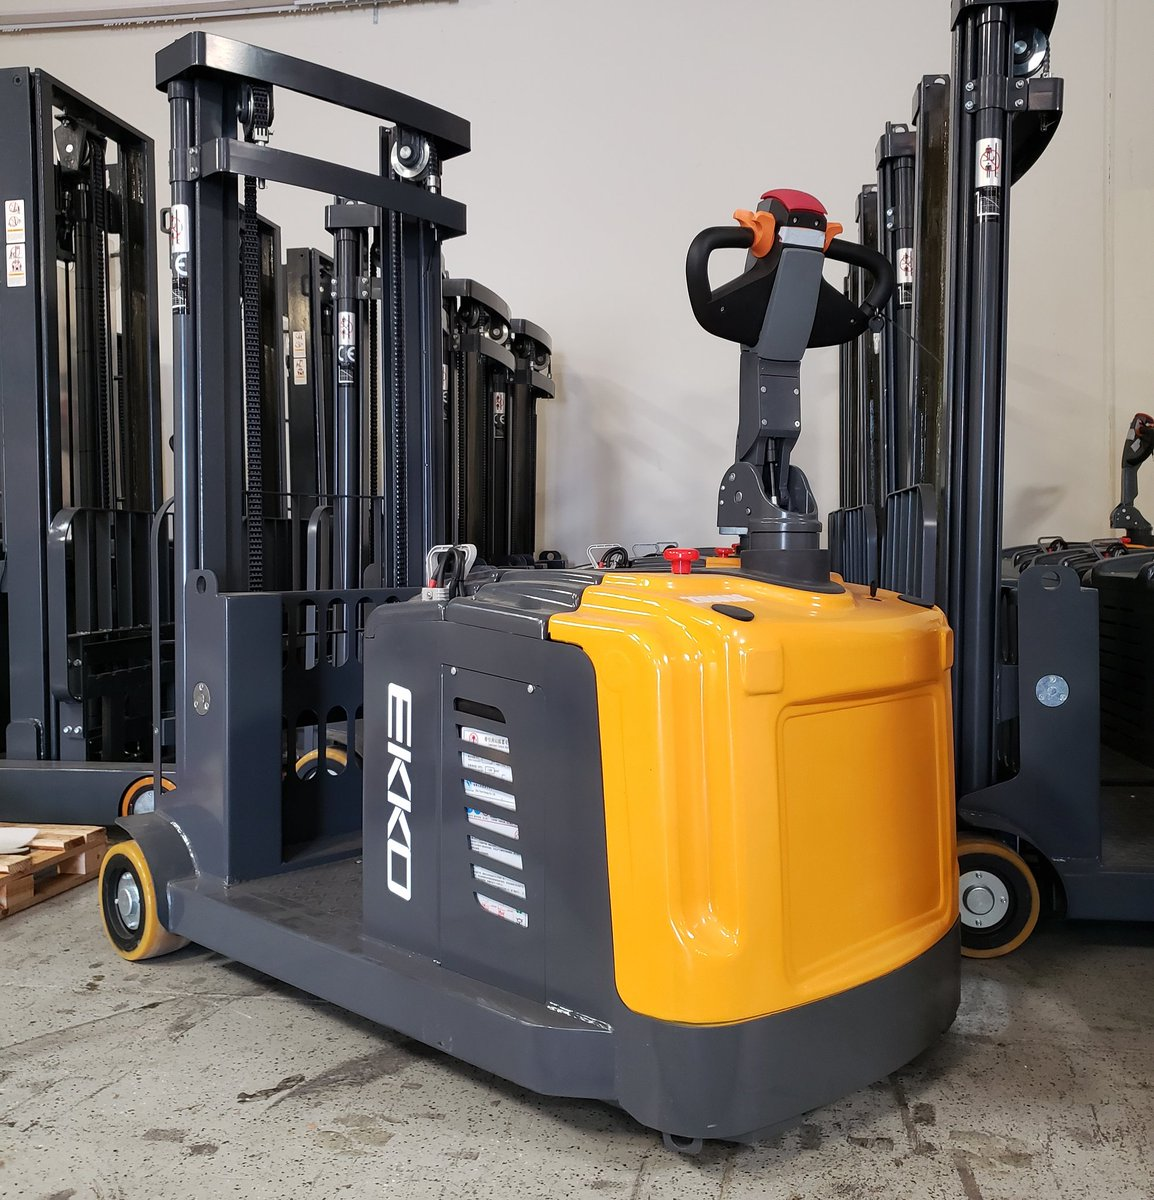 "Check out this #EK14 Counterbalanced Pallet Stacker, 3300lbs Capacity, 118-130"" Lift, AC Drive, EPS, Curtis Controller, 210Ah Battery. http://www.ekkolifts.com  #materialhandling #palletstackers #palletjacks #walkiestackers #walkiepalletjack #reachtruck #reachtrucks #distribution"